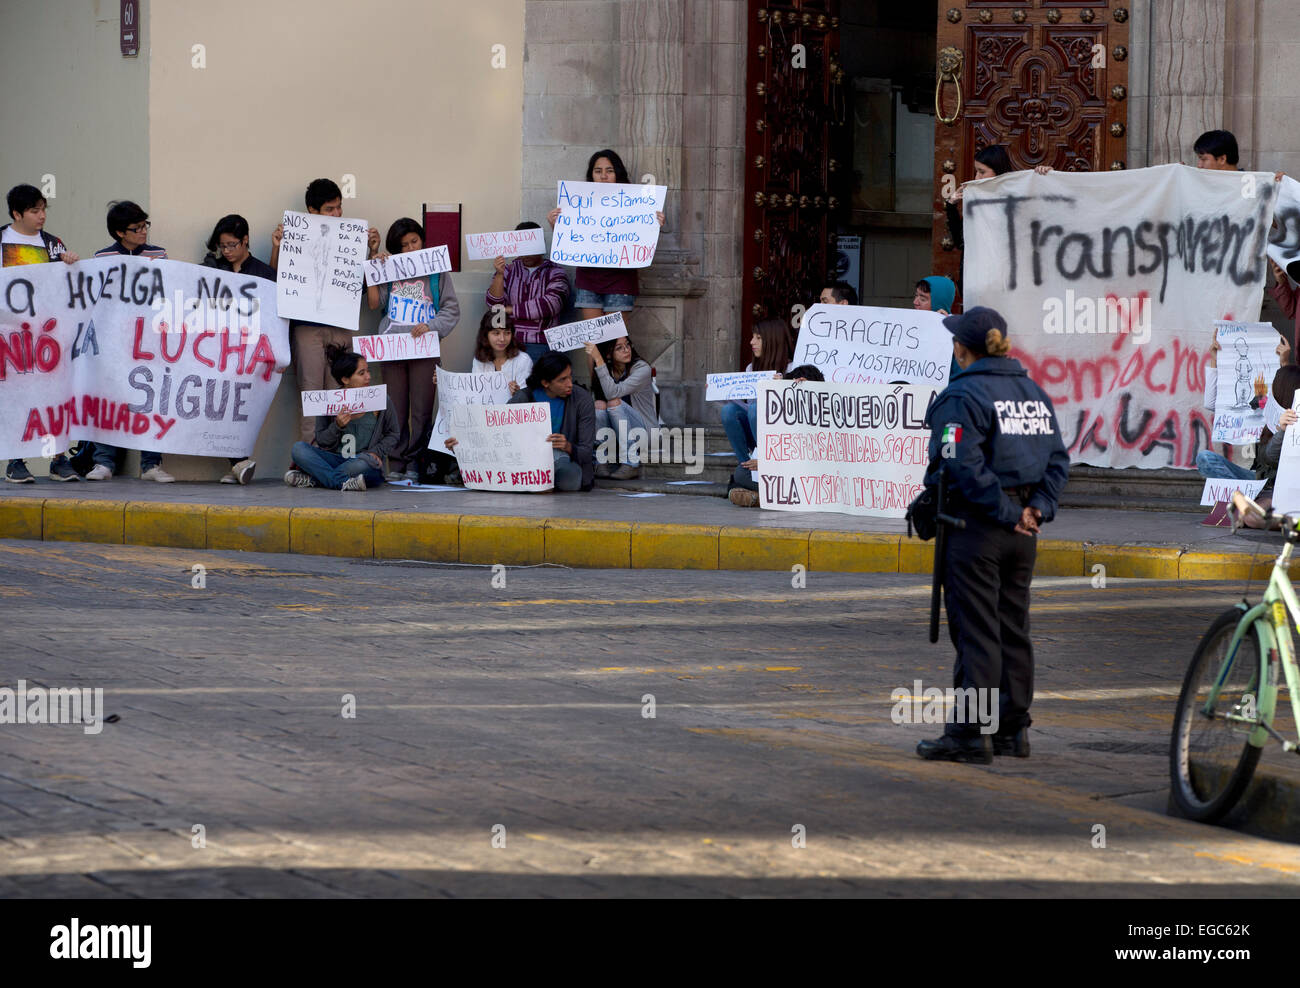 A policewoman watches over a university student demonstration, Merida, Yucatan, Mexico - Stock Image